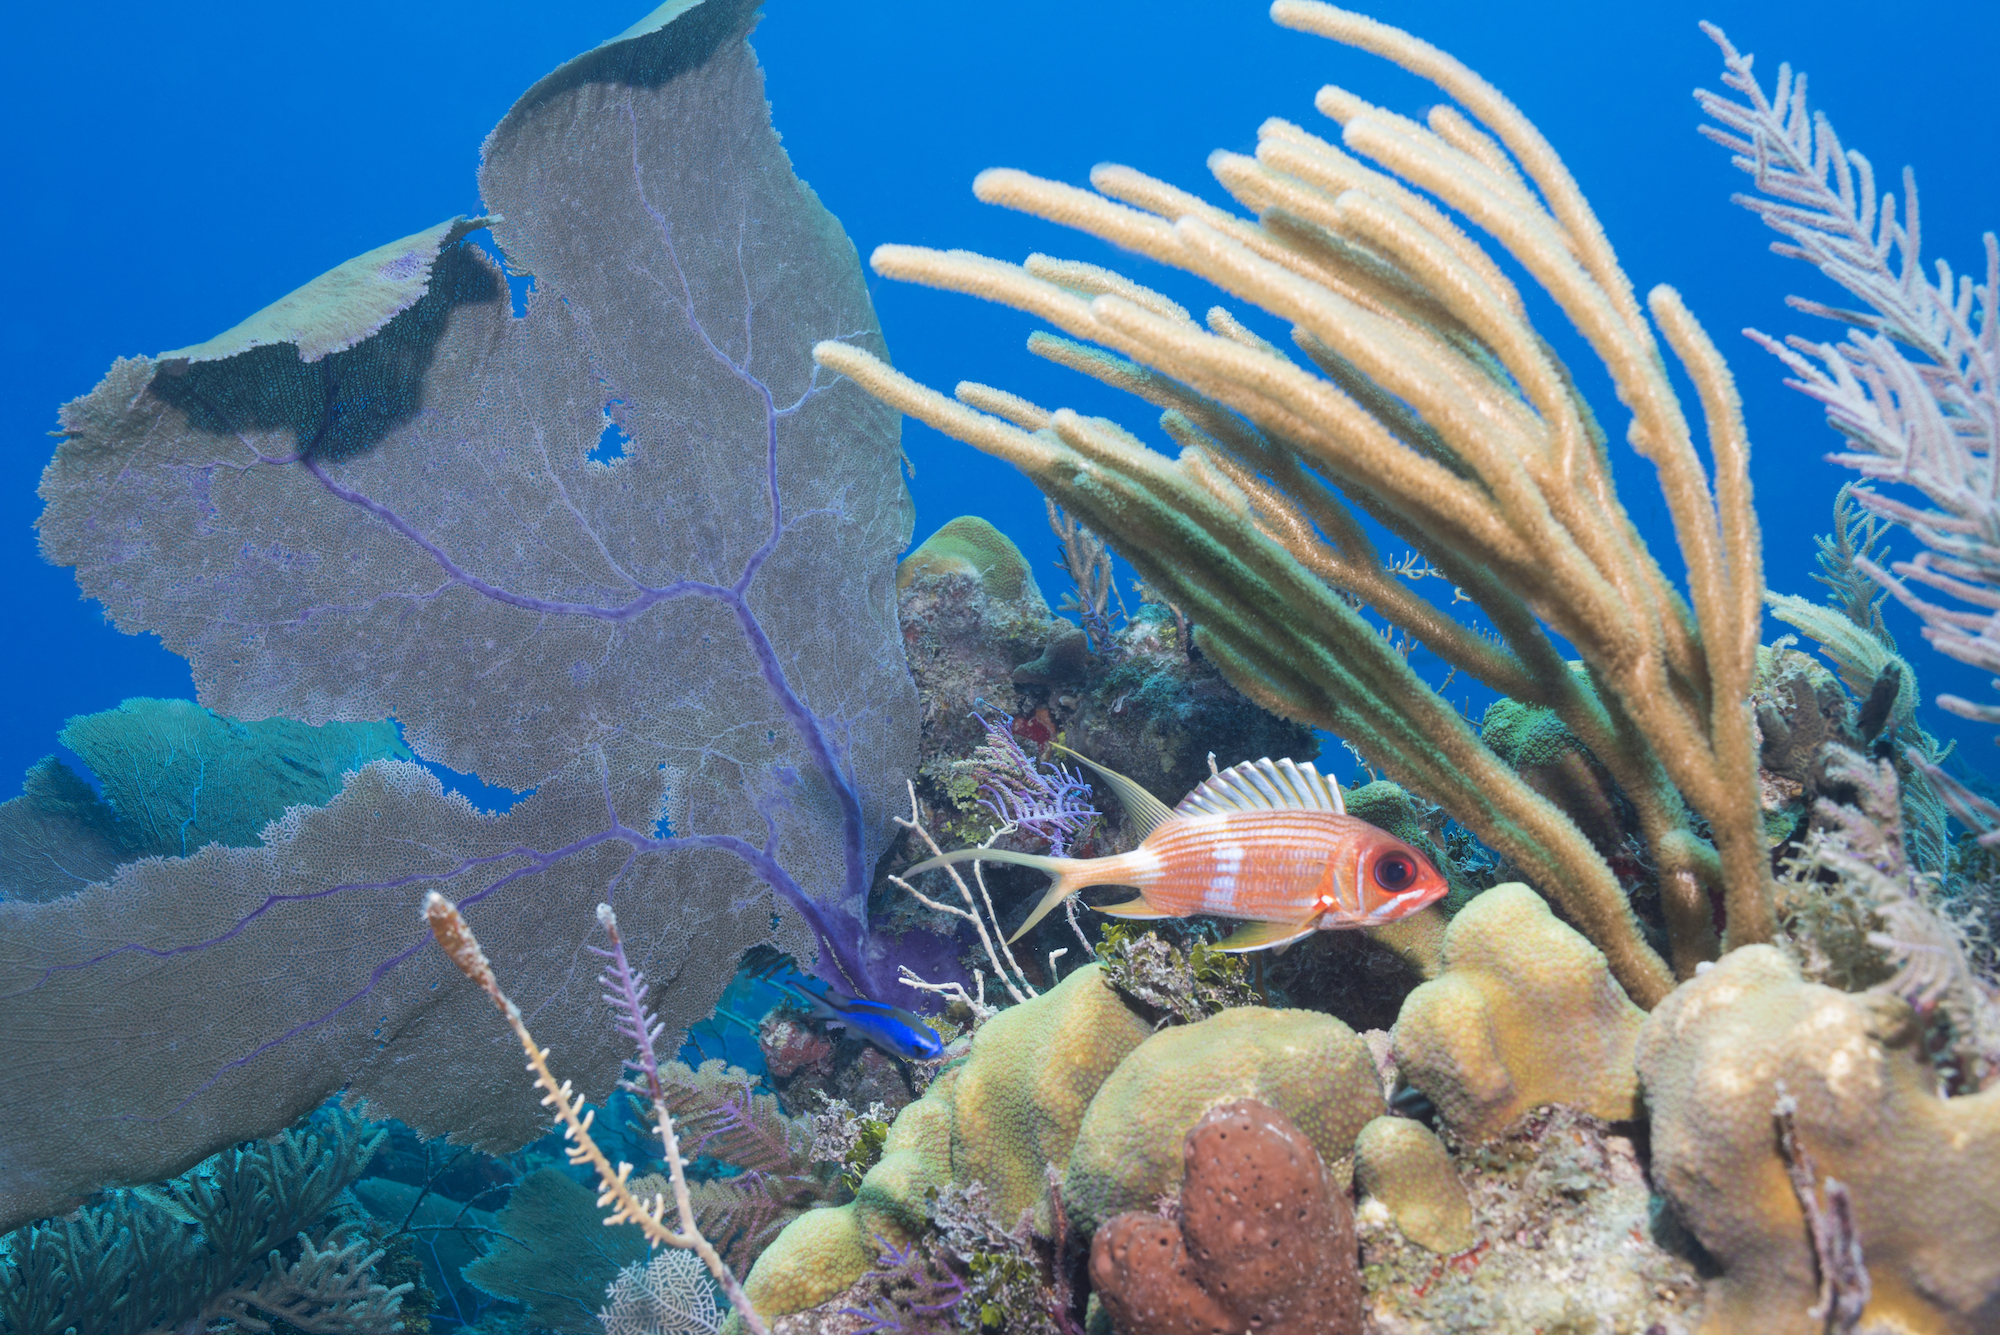 travel, Caribbean Sea, marine science, diving, snorkeling